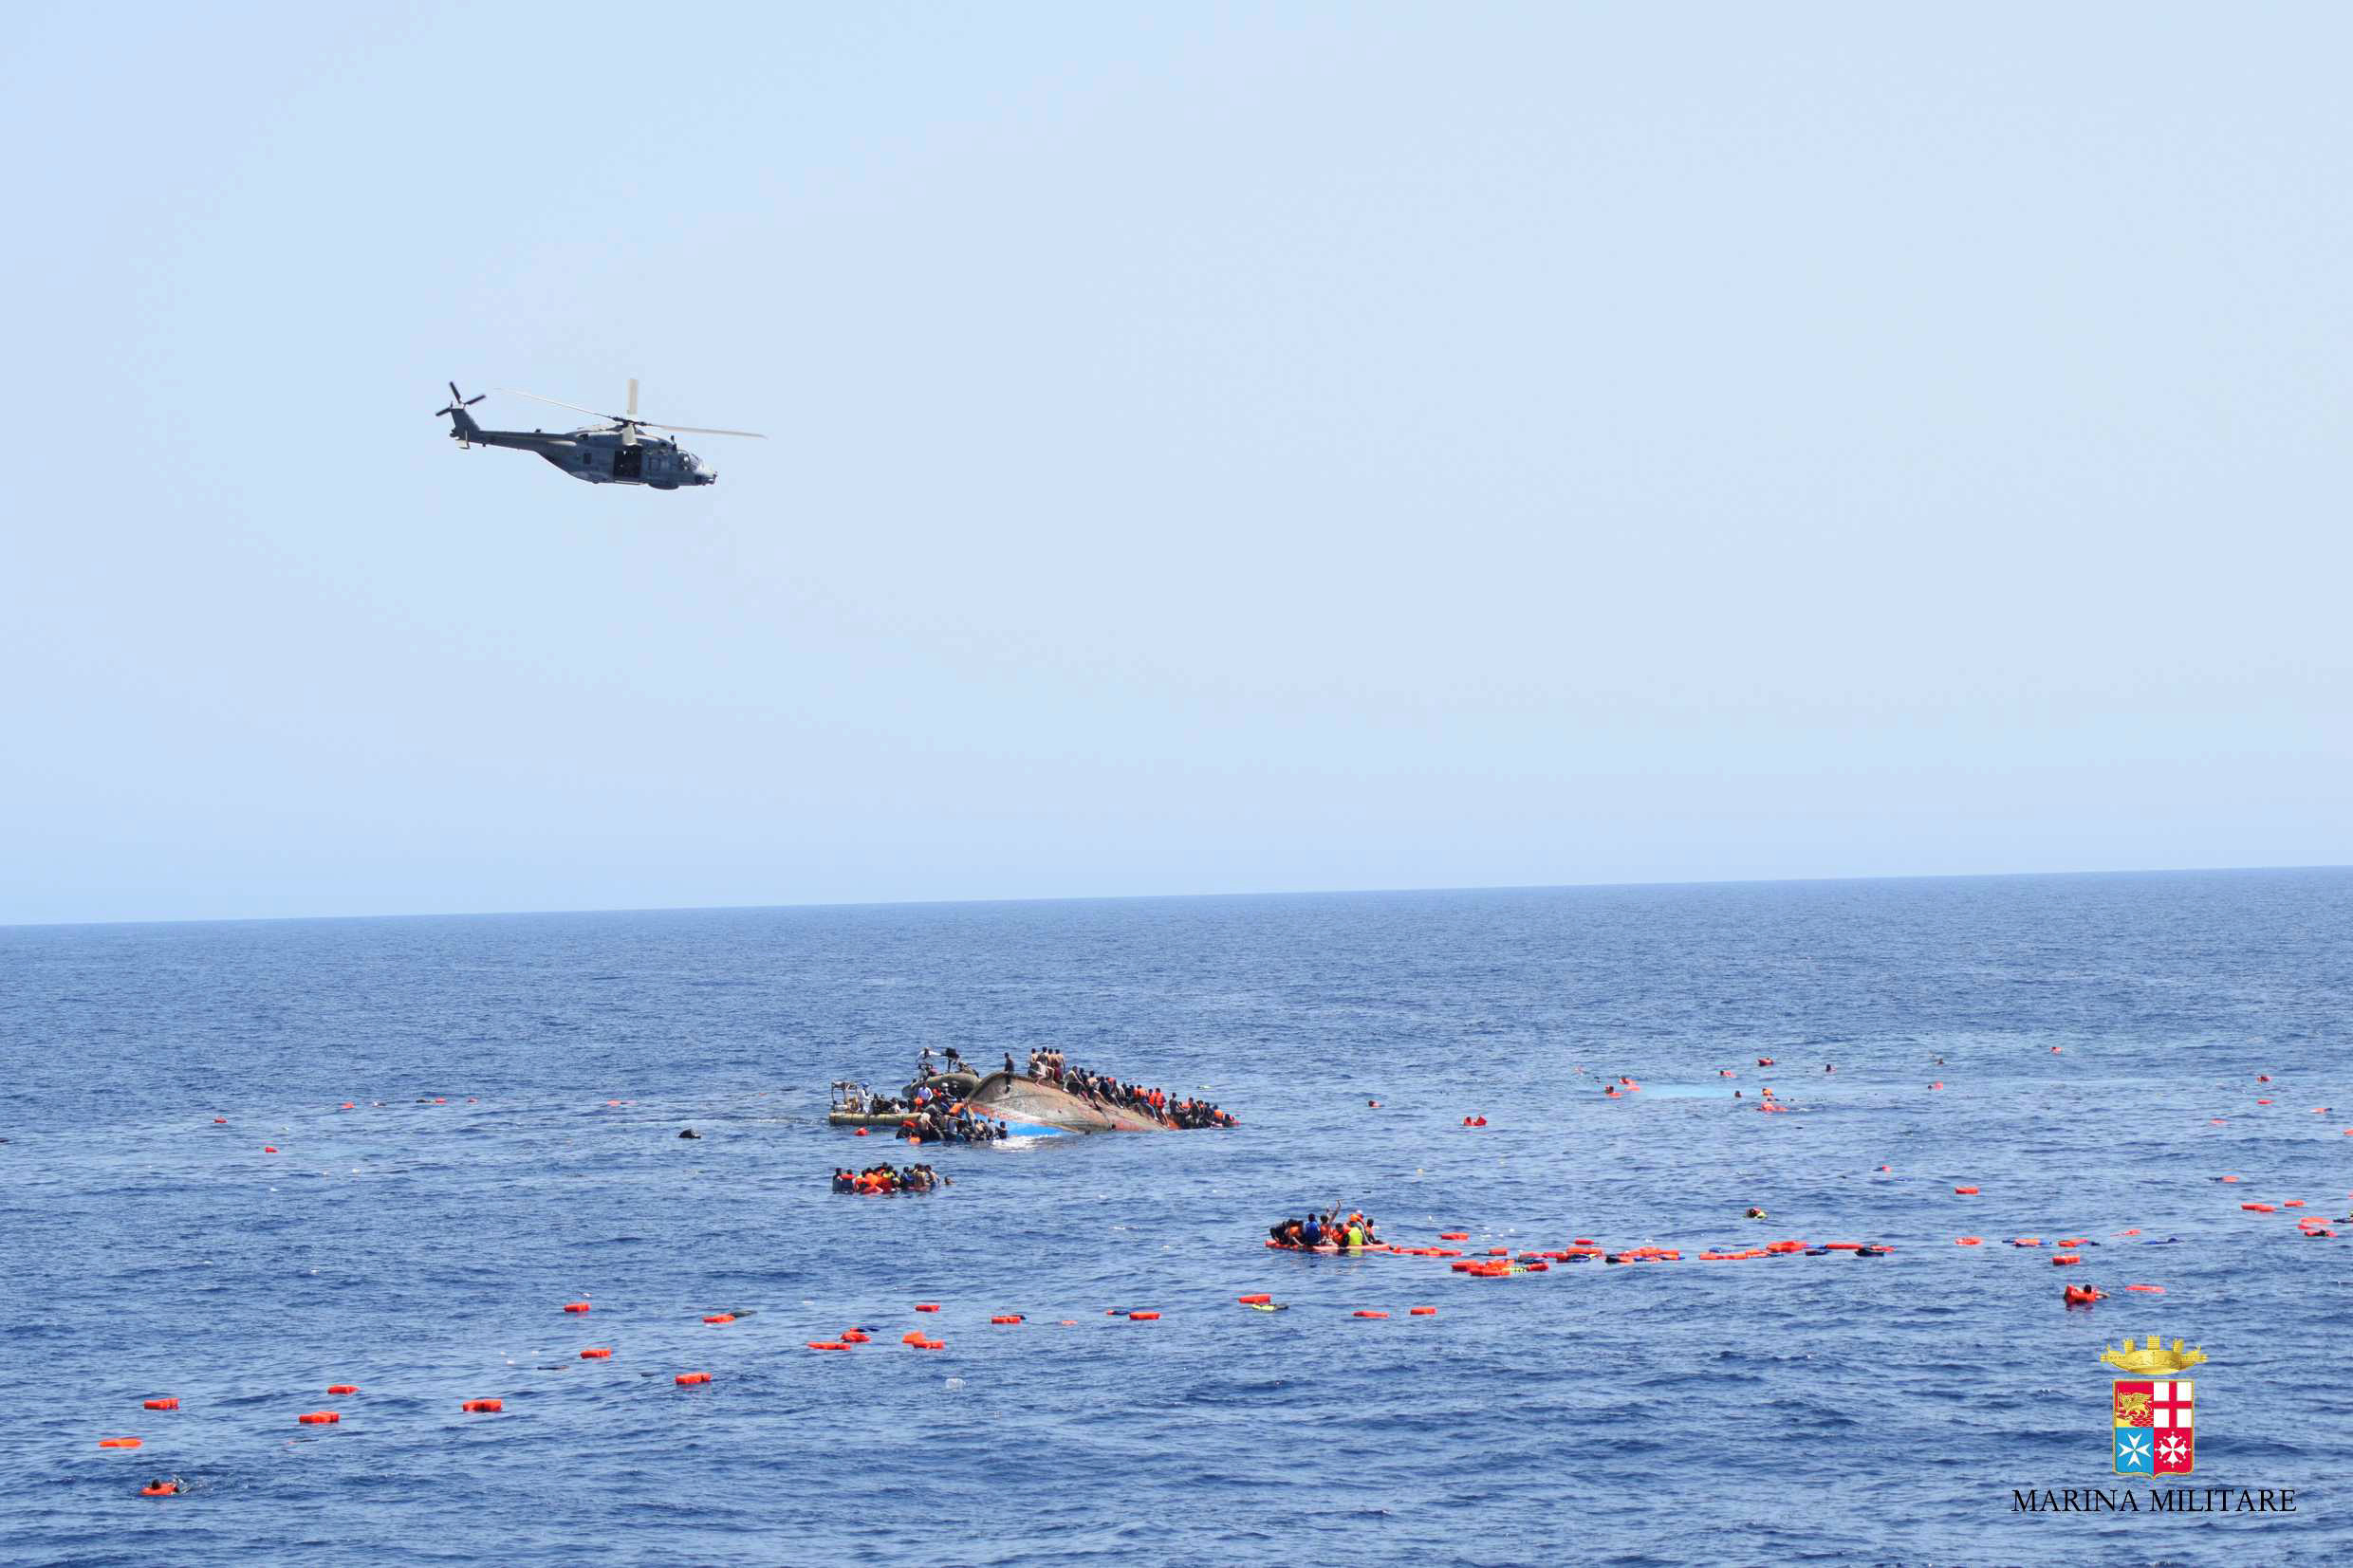 """Migrants from a capsized boat are rescued during a rescue operation by Italian navy ships """"Bettica"""" and """"Bergamini"""" off the coast of Libya"""